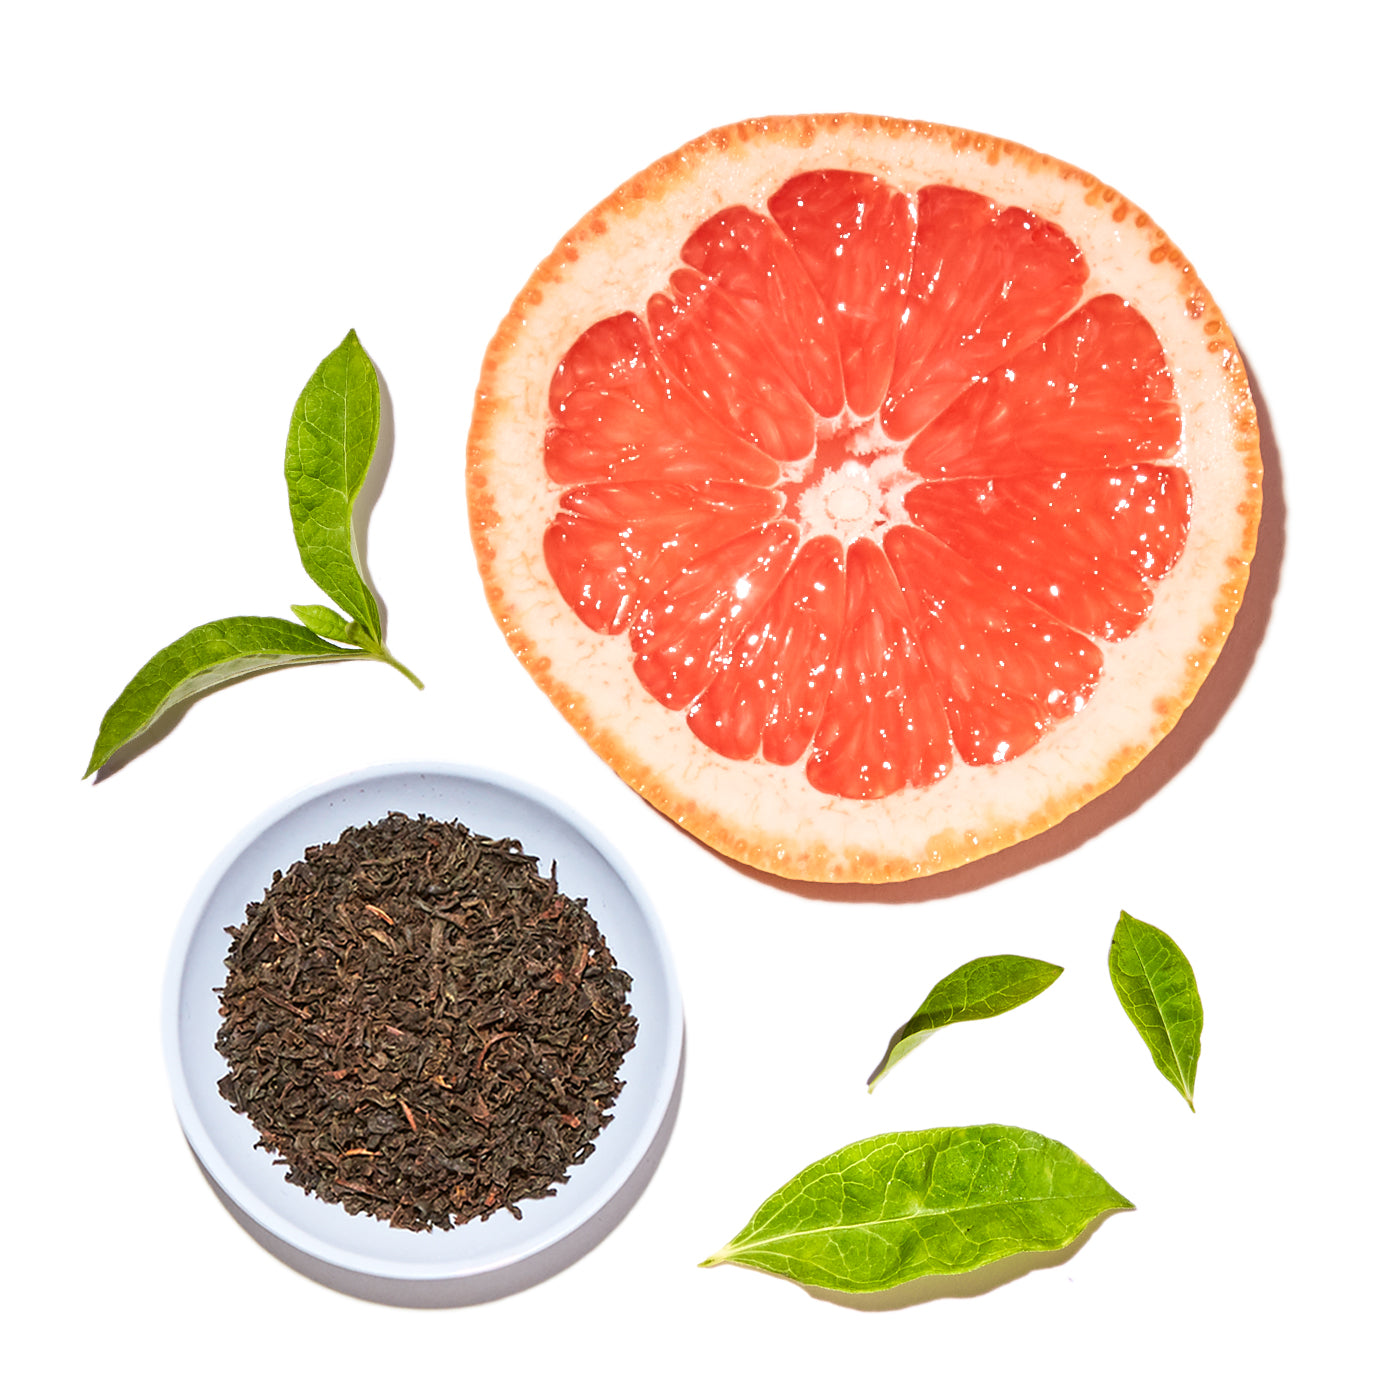 Health-Ade Grapefruit Kombucha Ingredients